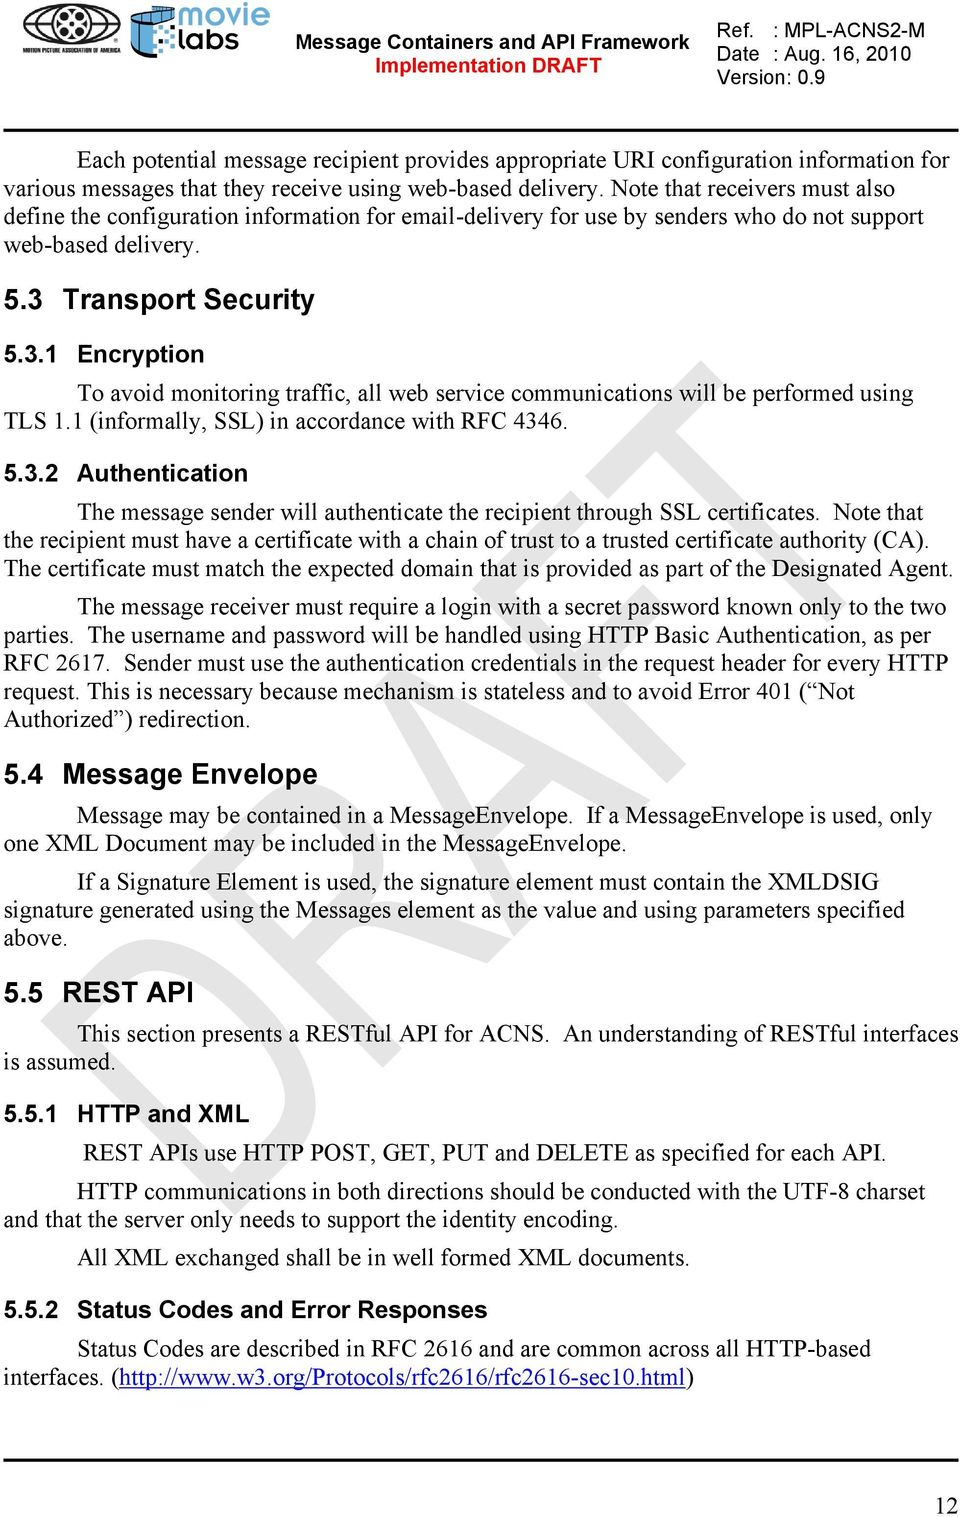 Transport Security 5.3.1 Encryption To avoid monitoring traffic, all web service communications will be performed using TLS 1.1 (informally, SSL) in accordance with RFC 4346. 5.3.2 Authentication The message sender will authenticate the recipient through SSL certificates.